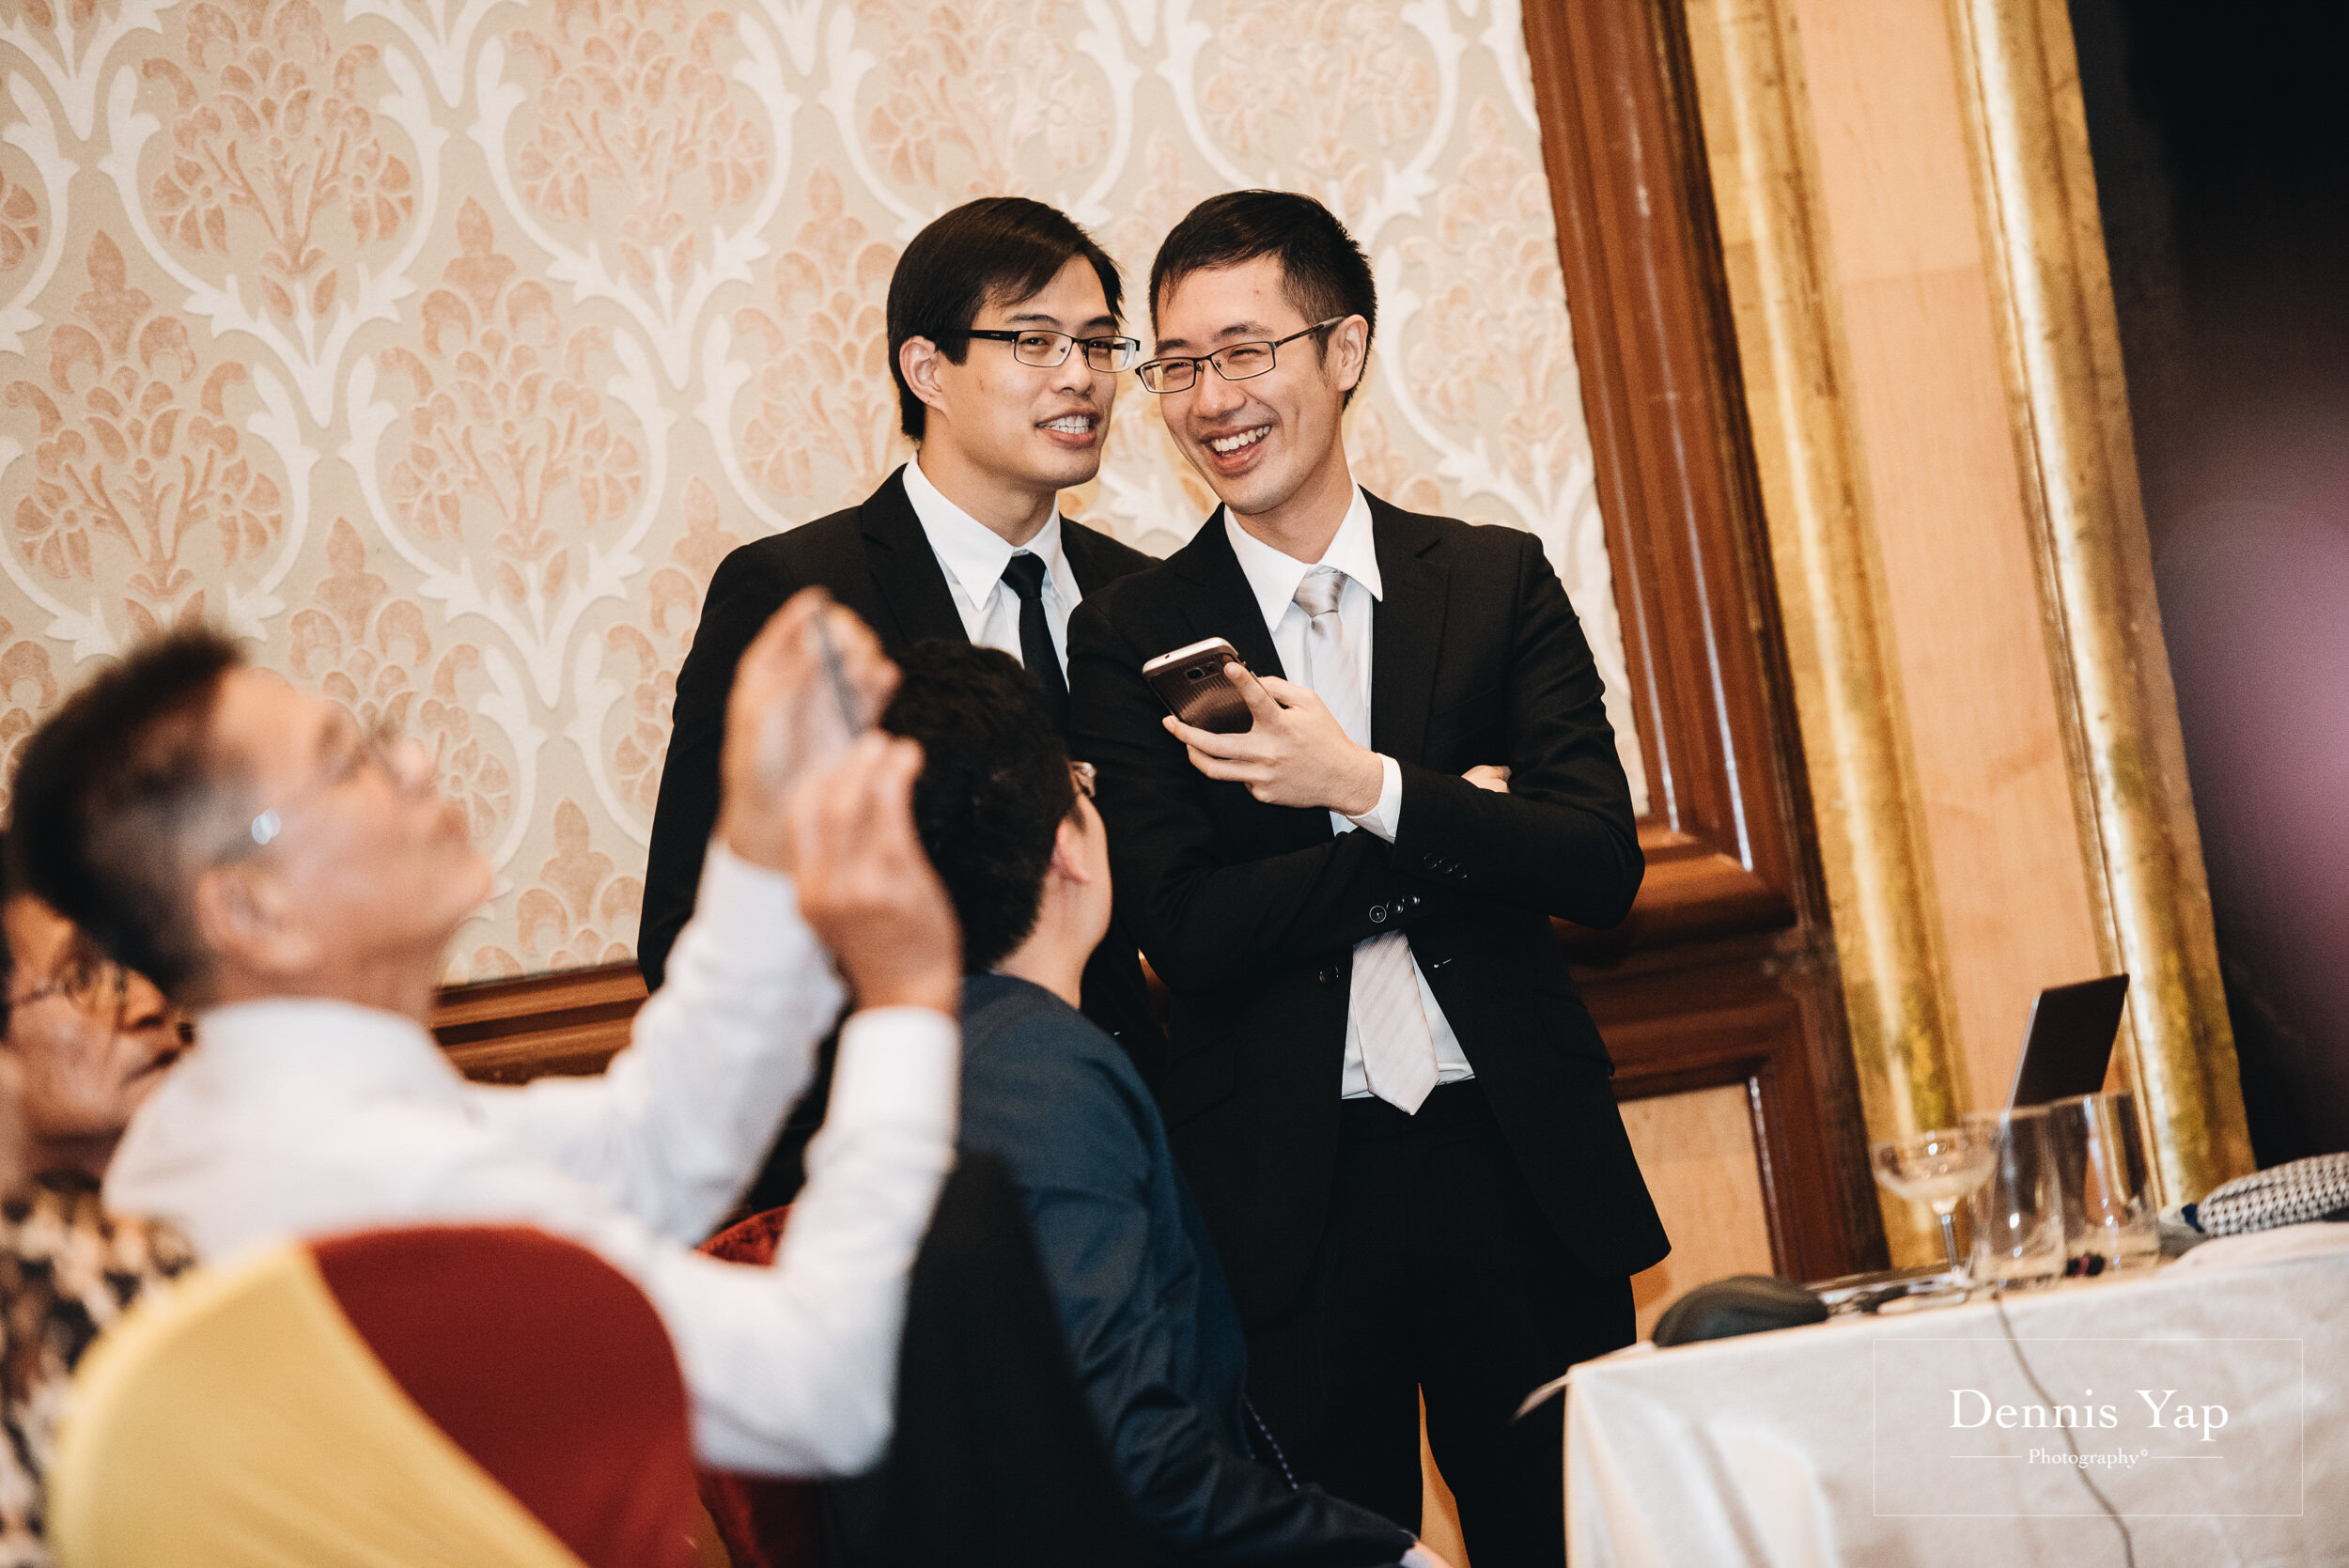 louis su yan wedding dinner dorsett grand subang dennis yap photography-124.jpg